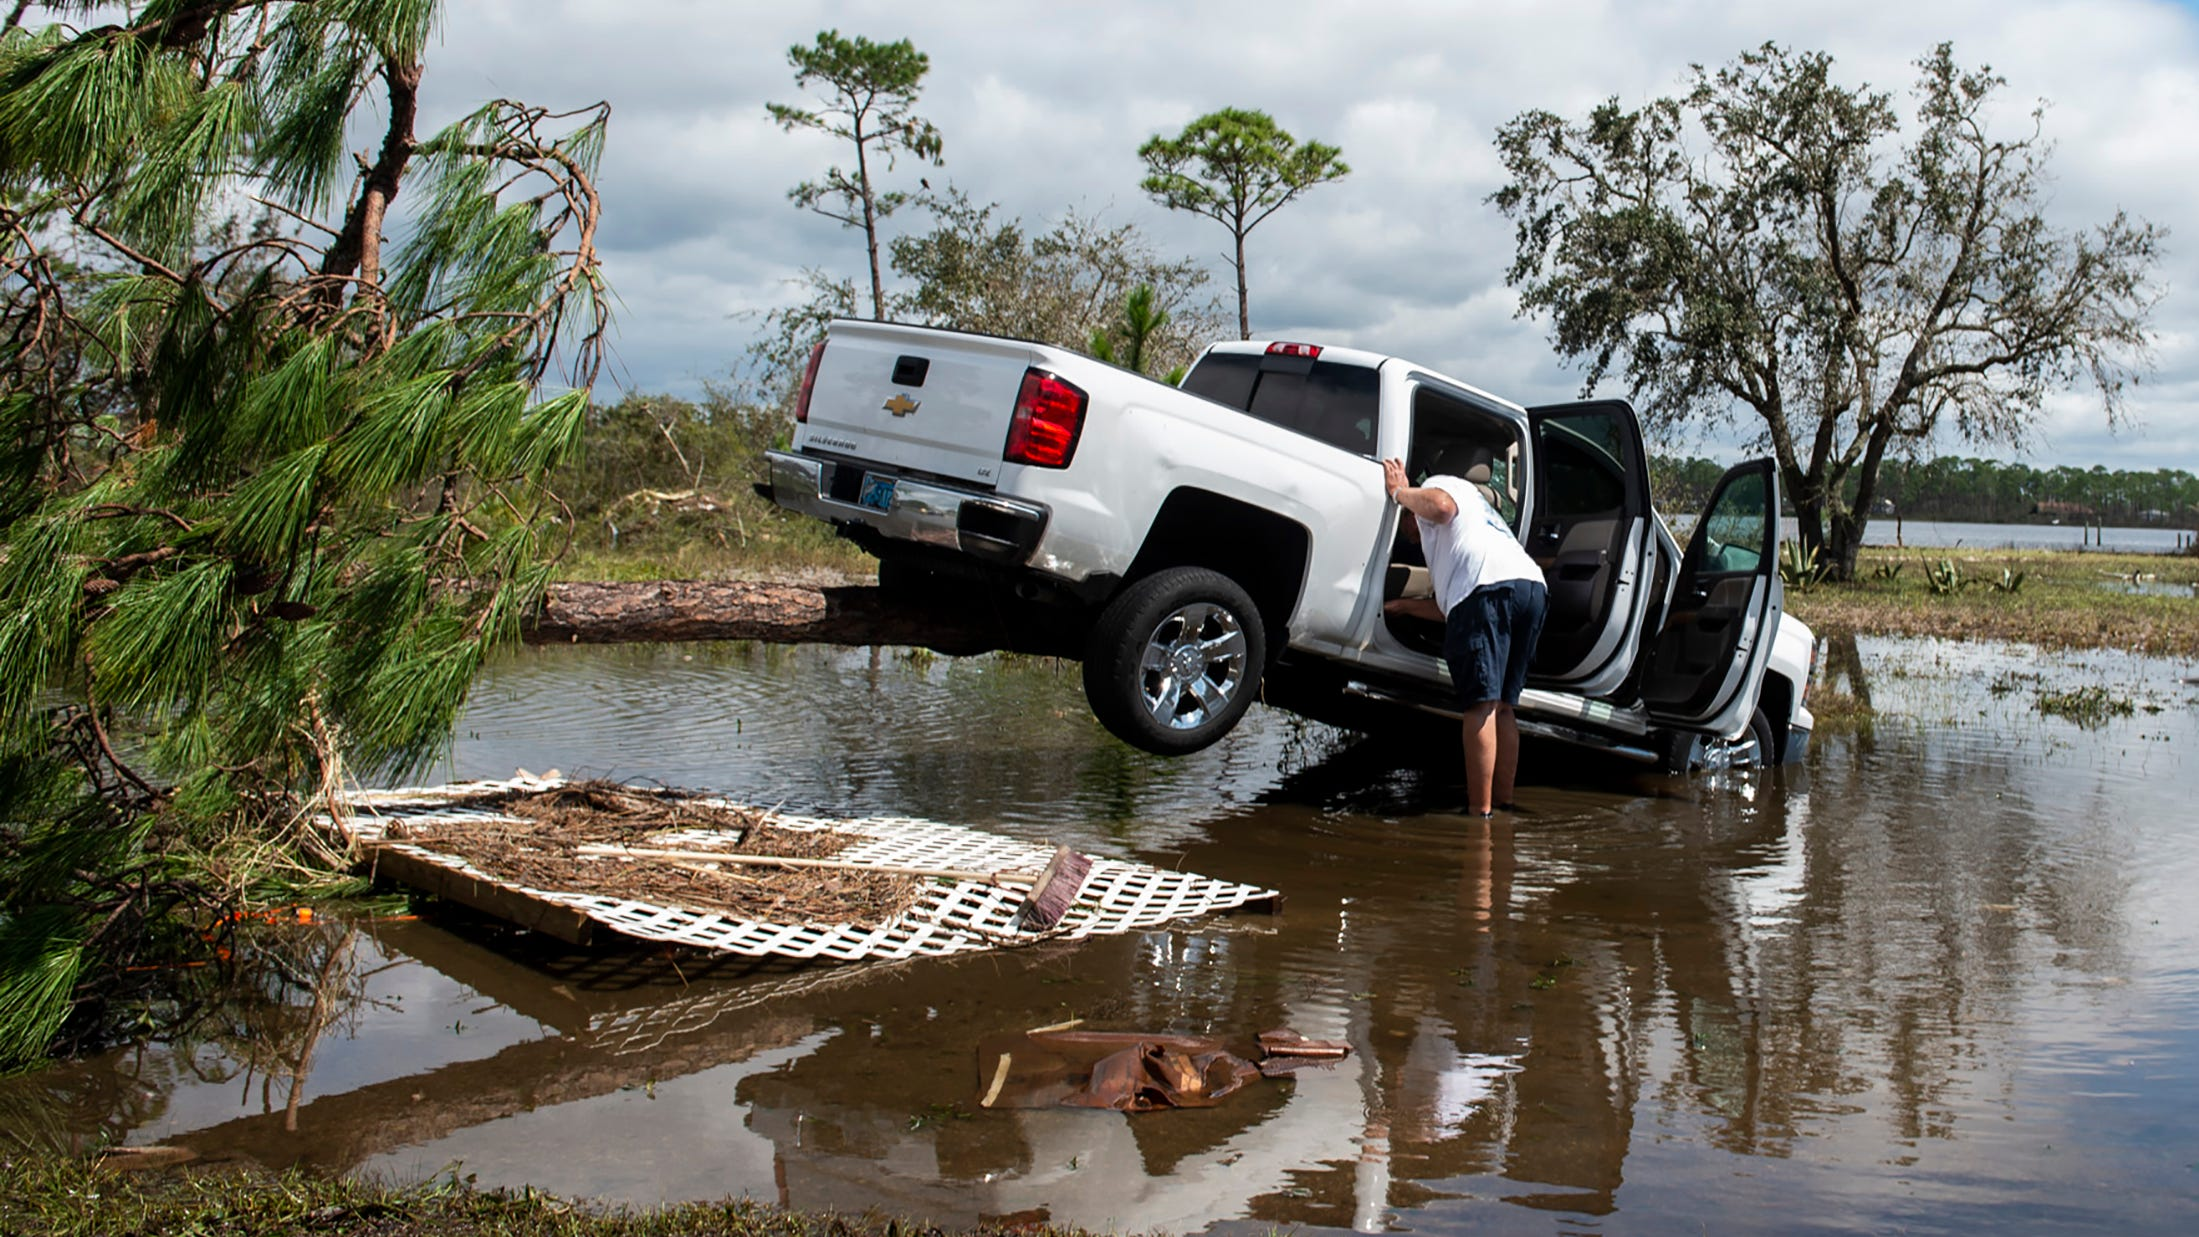 Live coverage of Sally: At least $29M in damage in Florida county; 320K still without power; bridge may be closed for month